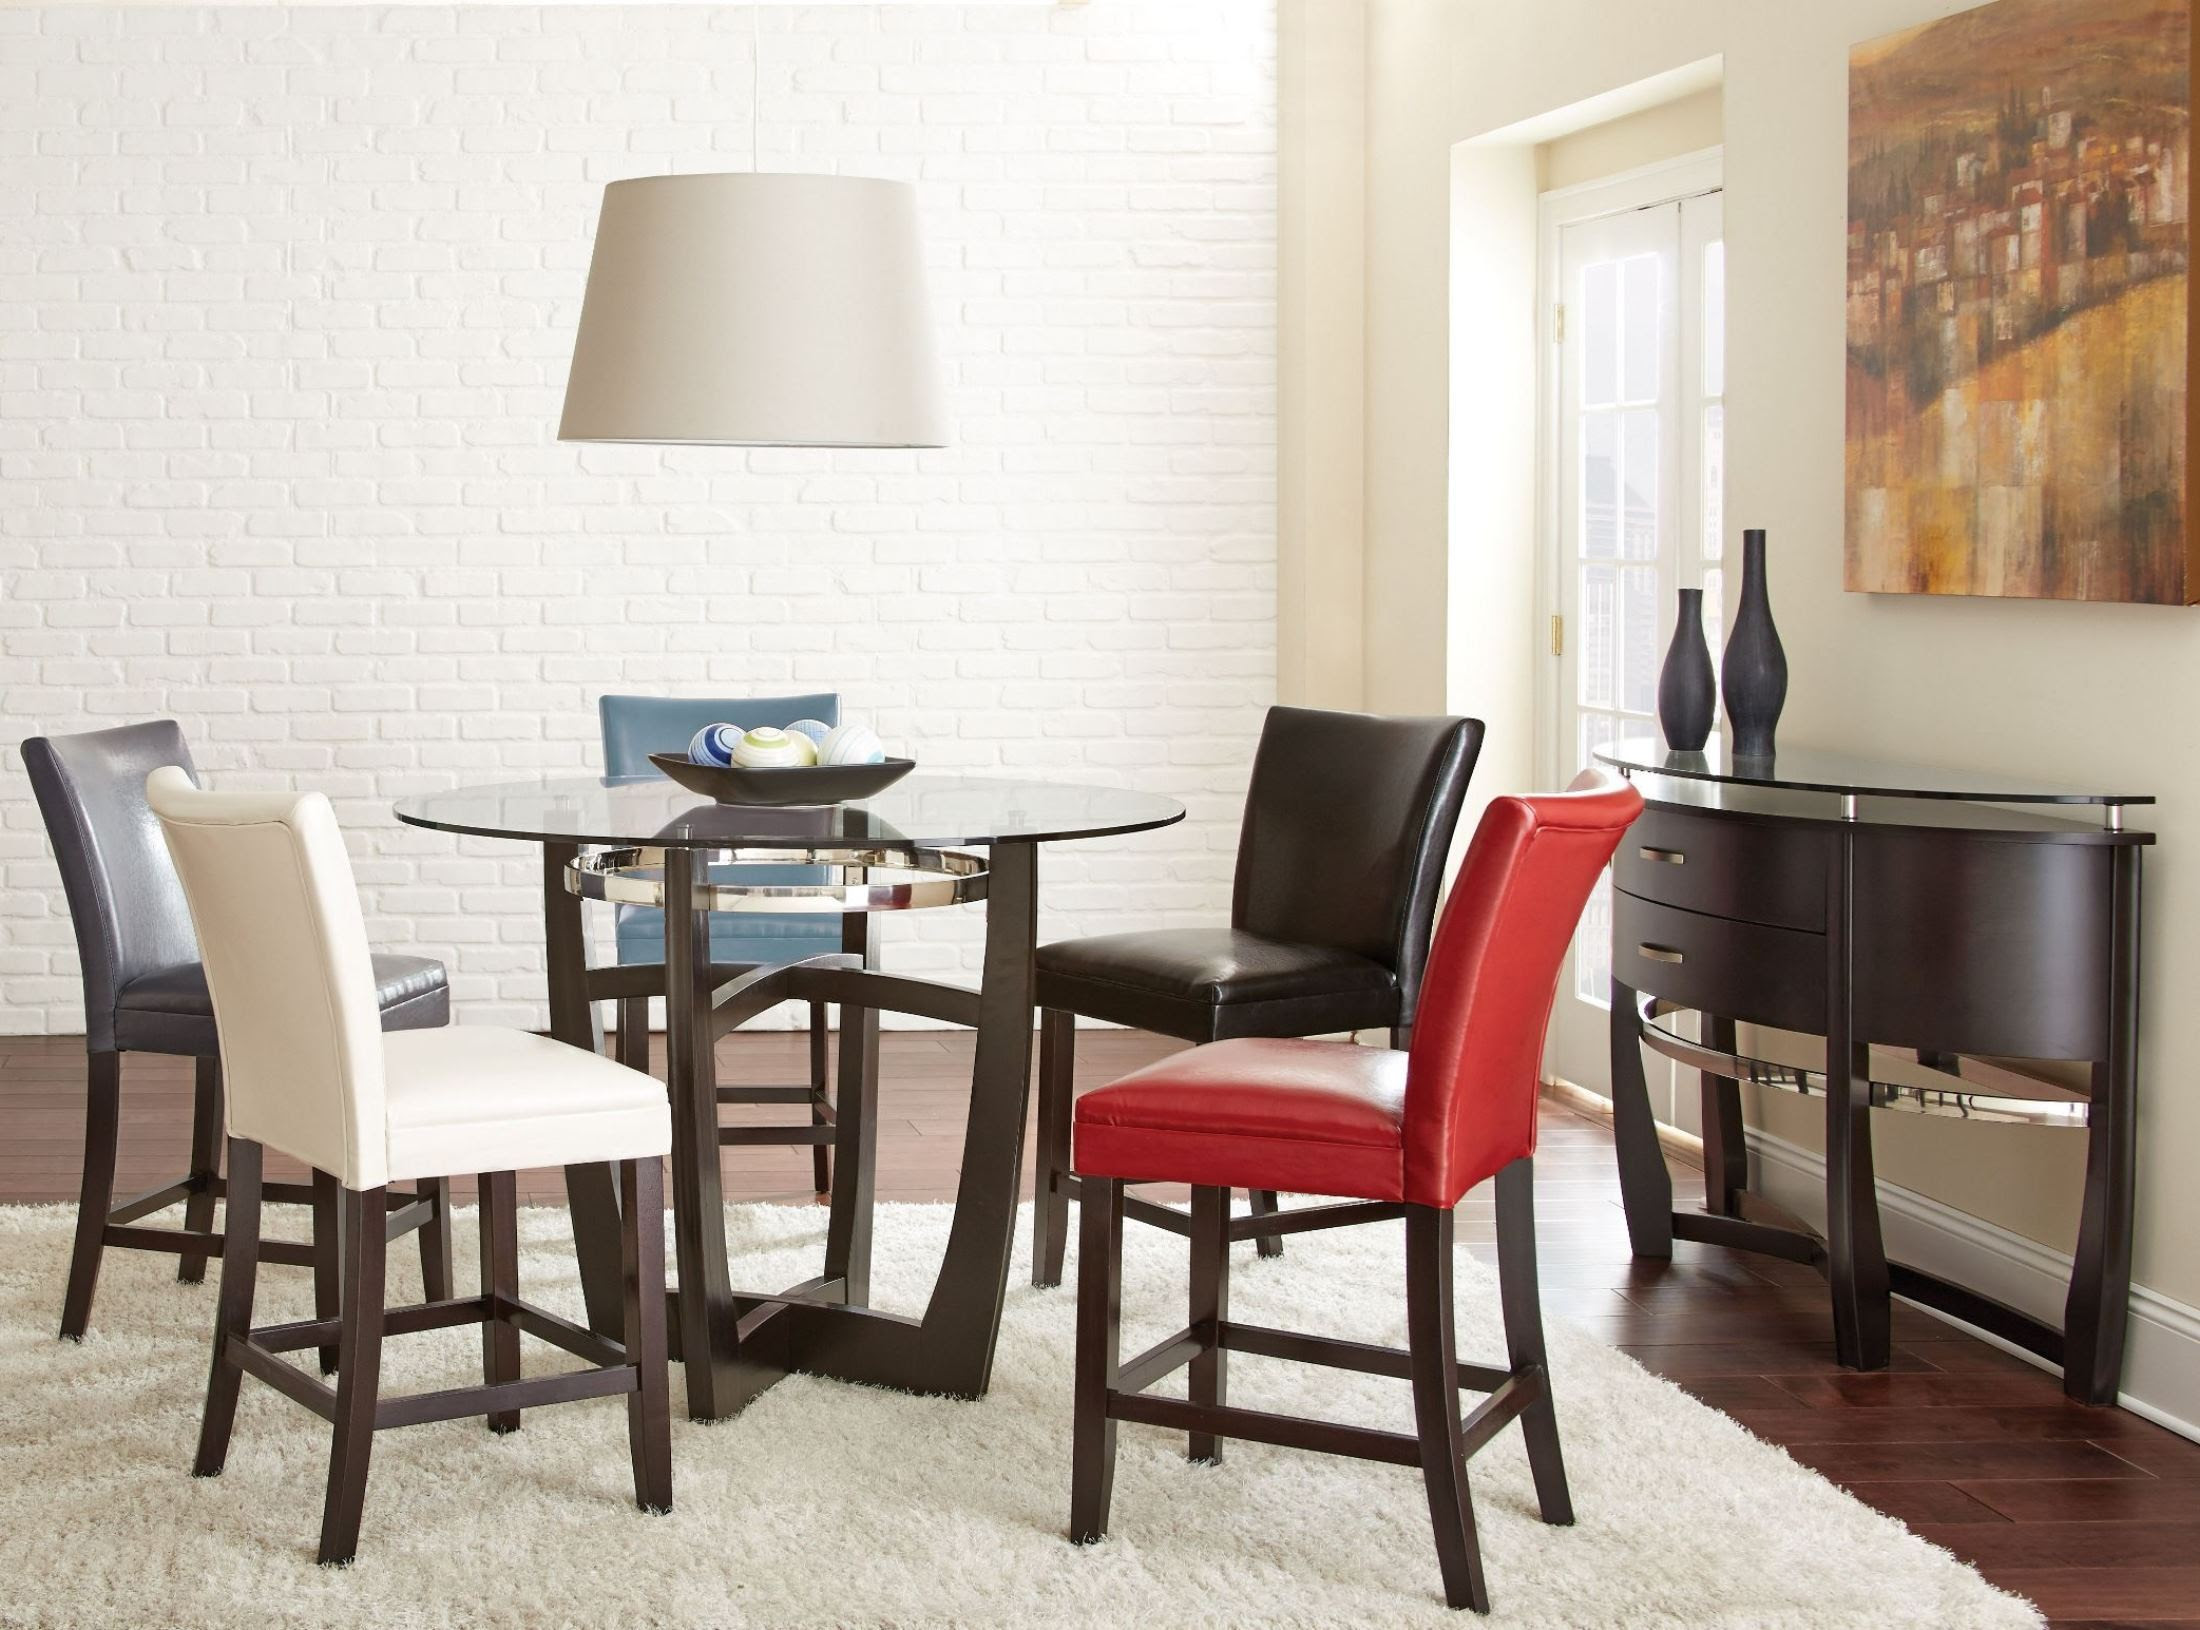 Matinee Glass Top Round Counter Height Dining Room Set ...